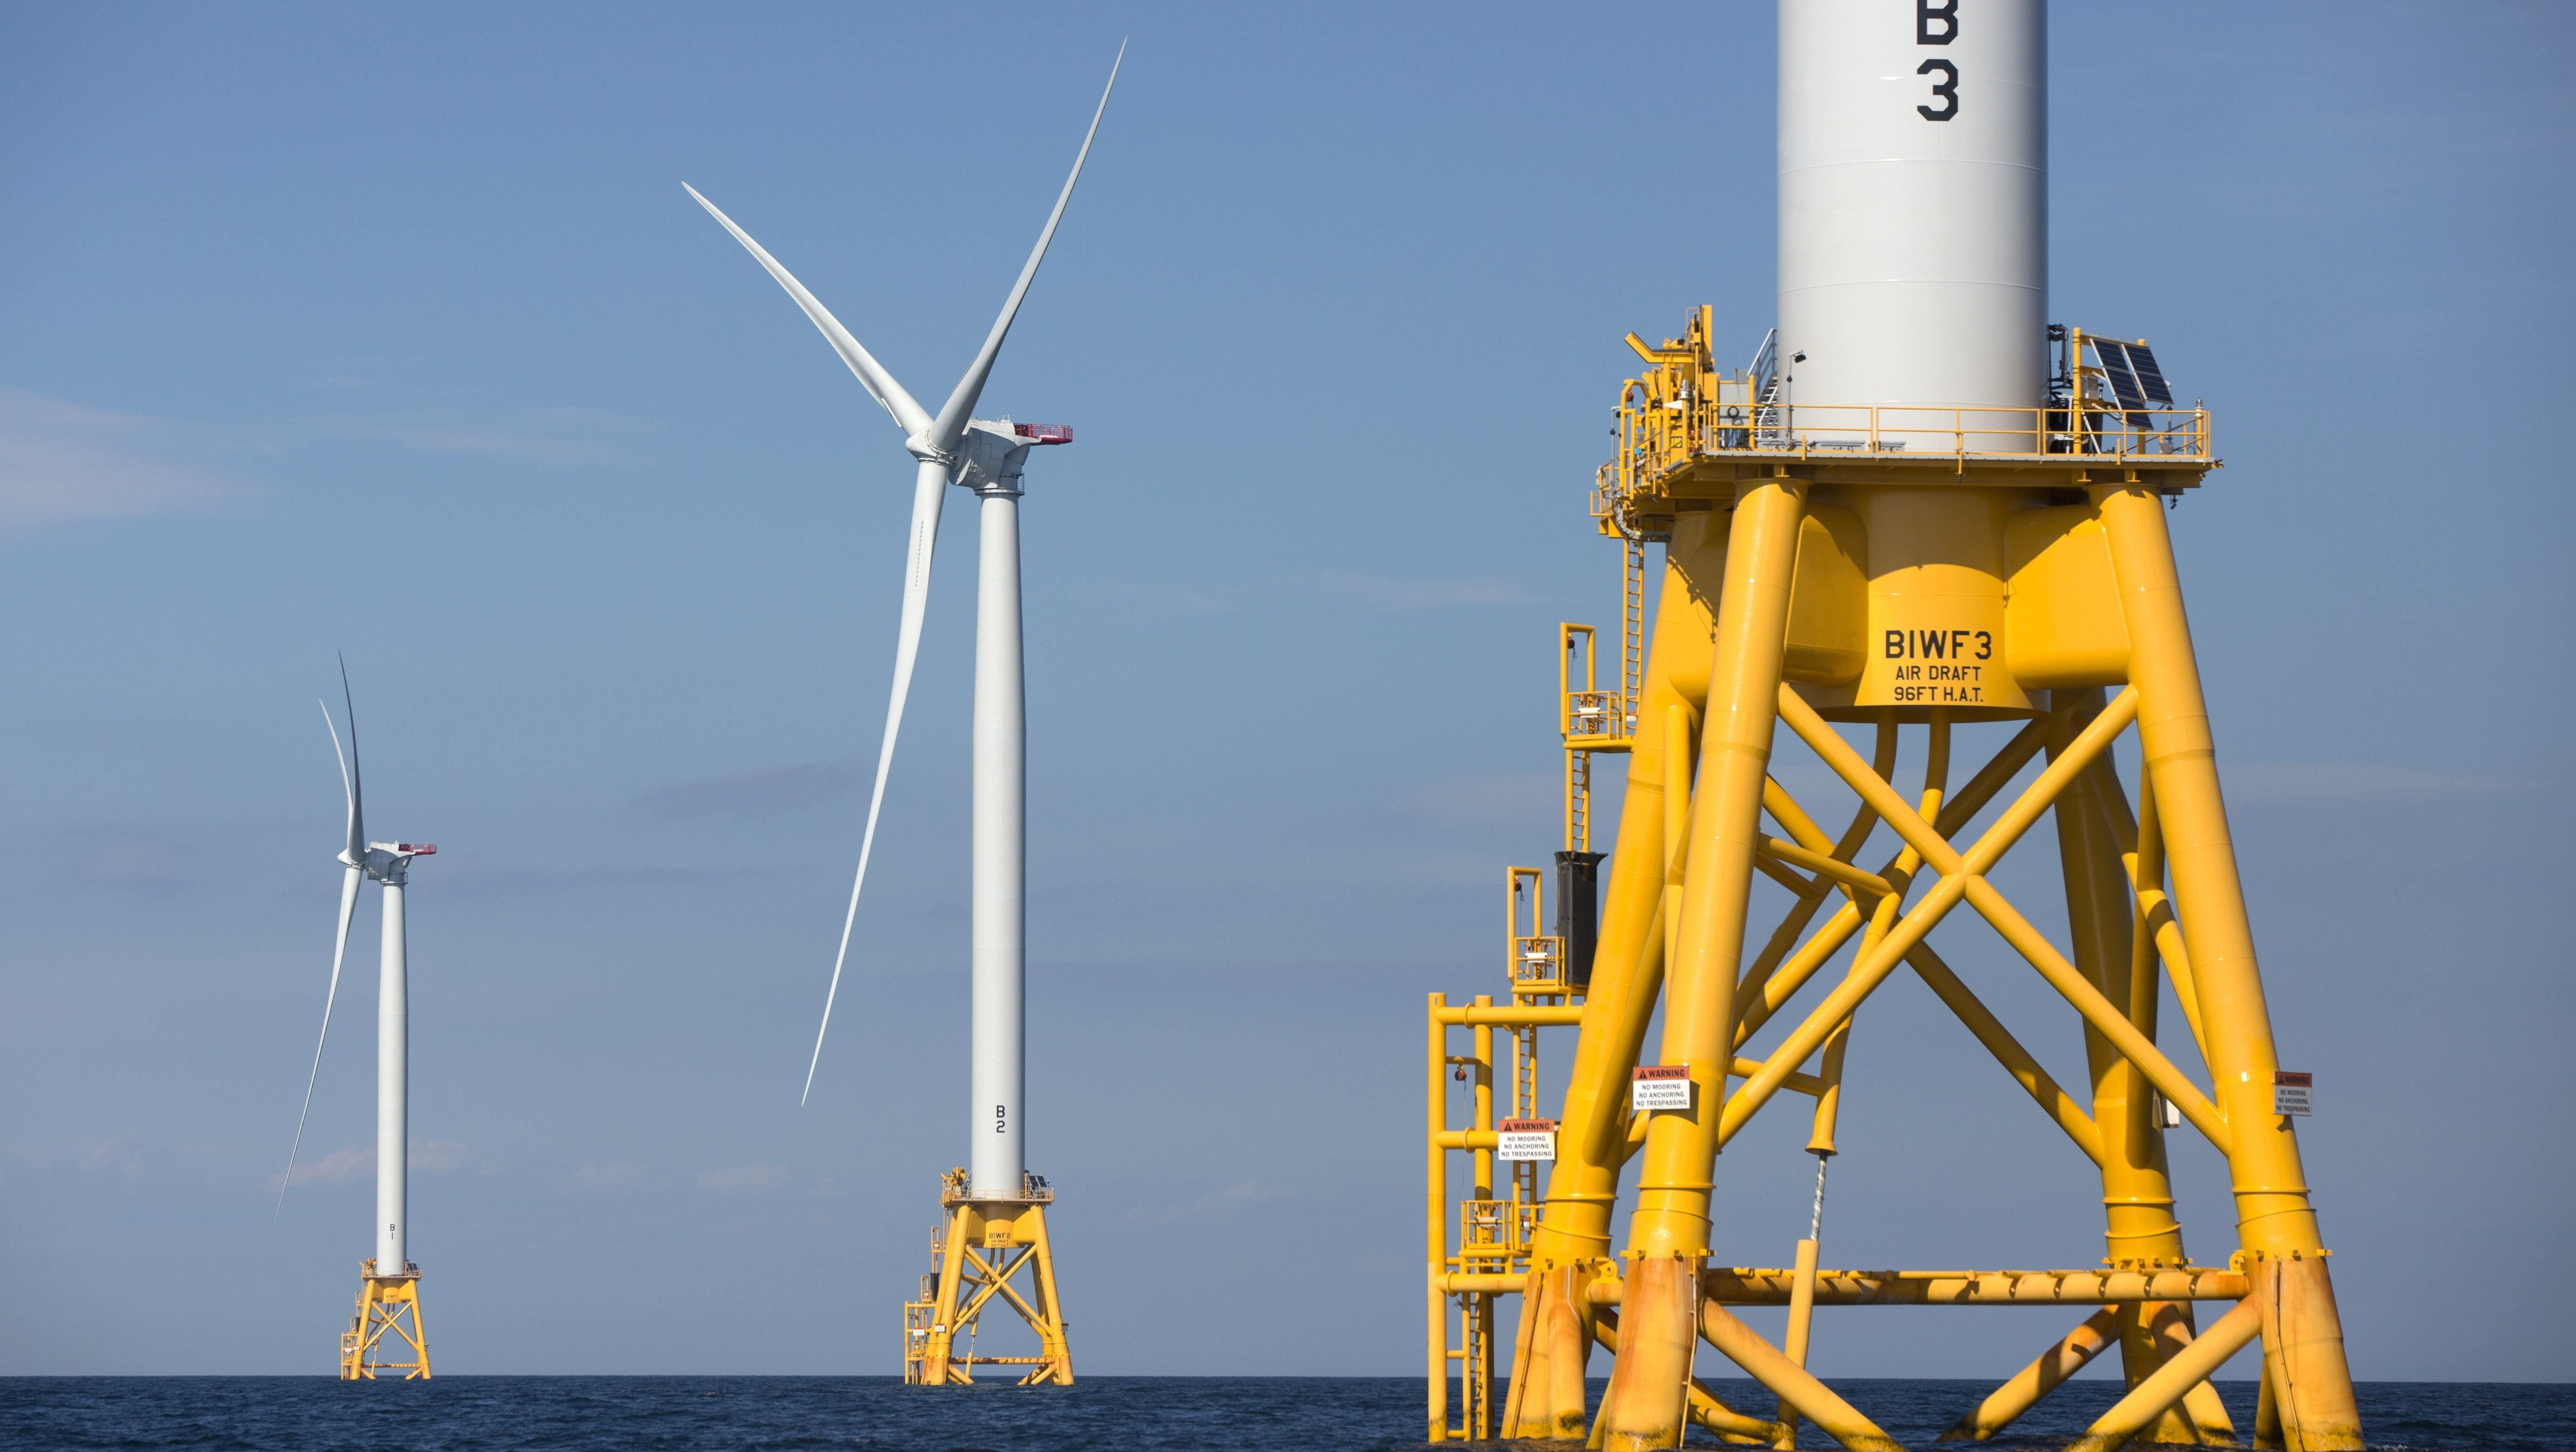 Three wind turbines from the Deepwater Wind project off Block Island, R.I., are viewed Monday, Aug. 15, 2016. Deepwater Wind's $300 million five-turbine wind farm off Block Island is expected to be operational this fall.(AP Photo/Michael Dwyer)